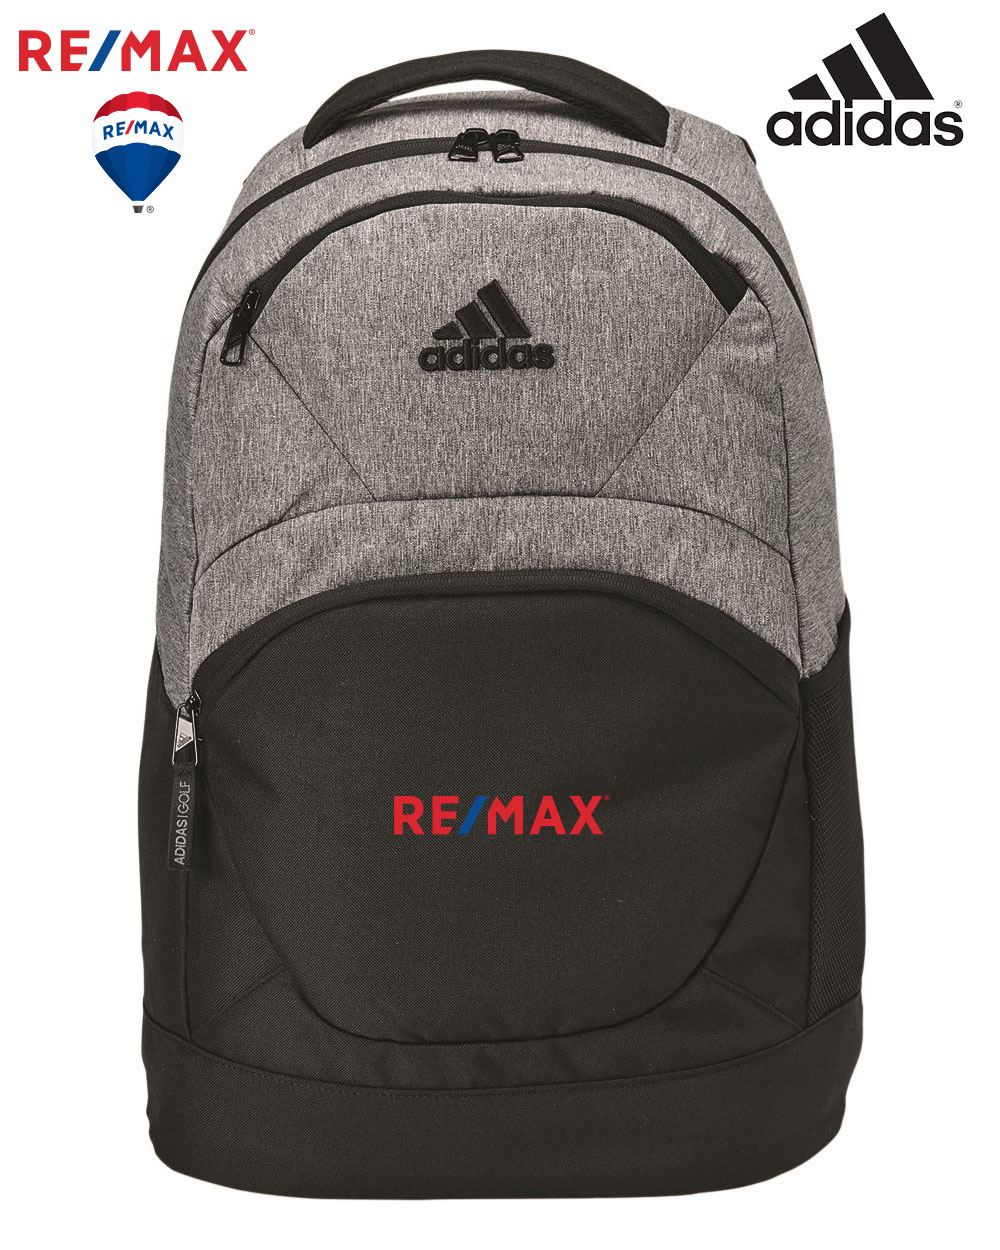 Adidas - 32L Medium Backpack